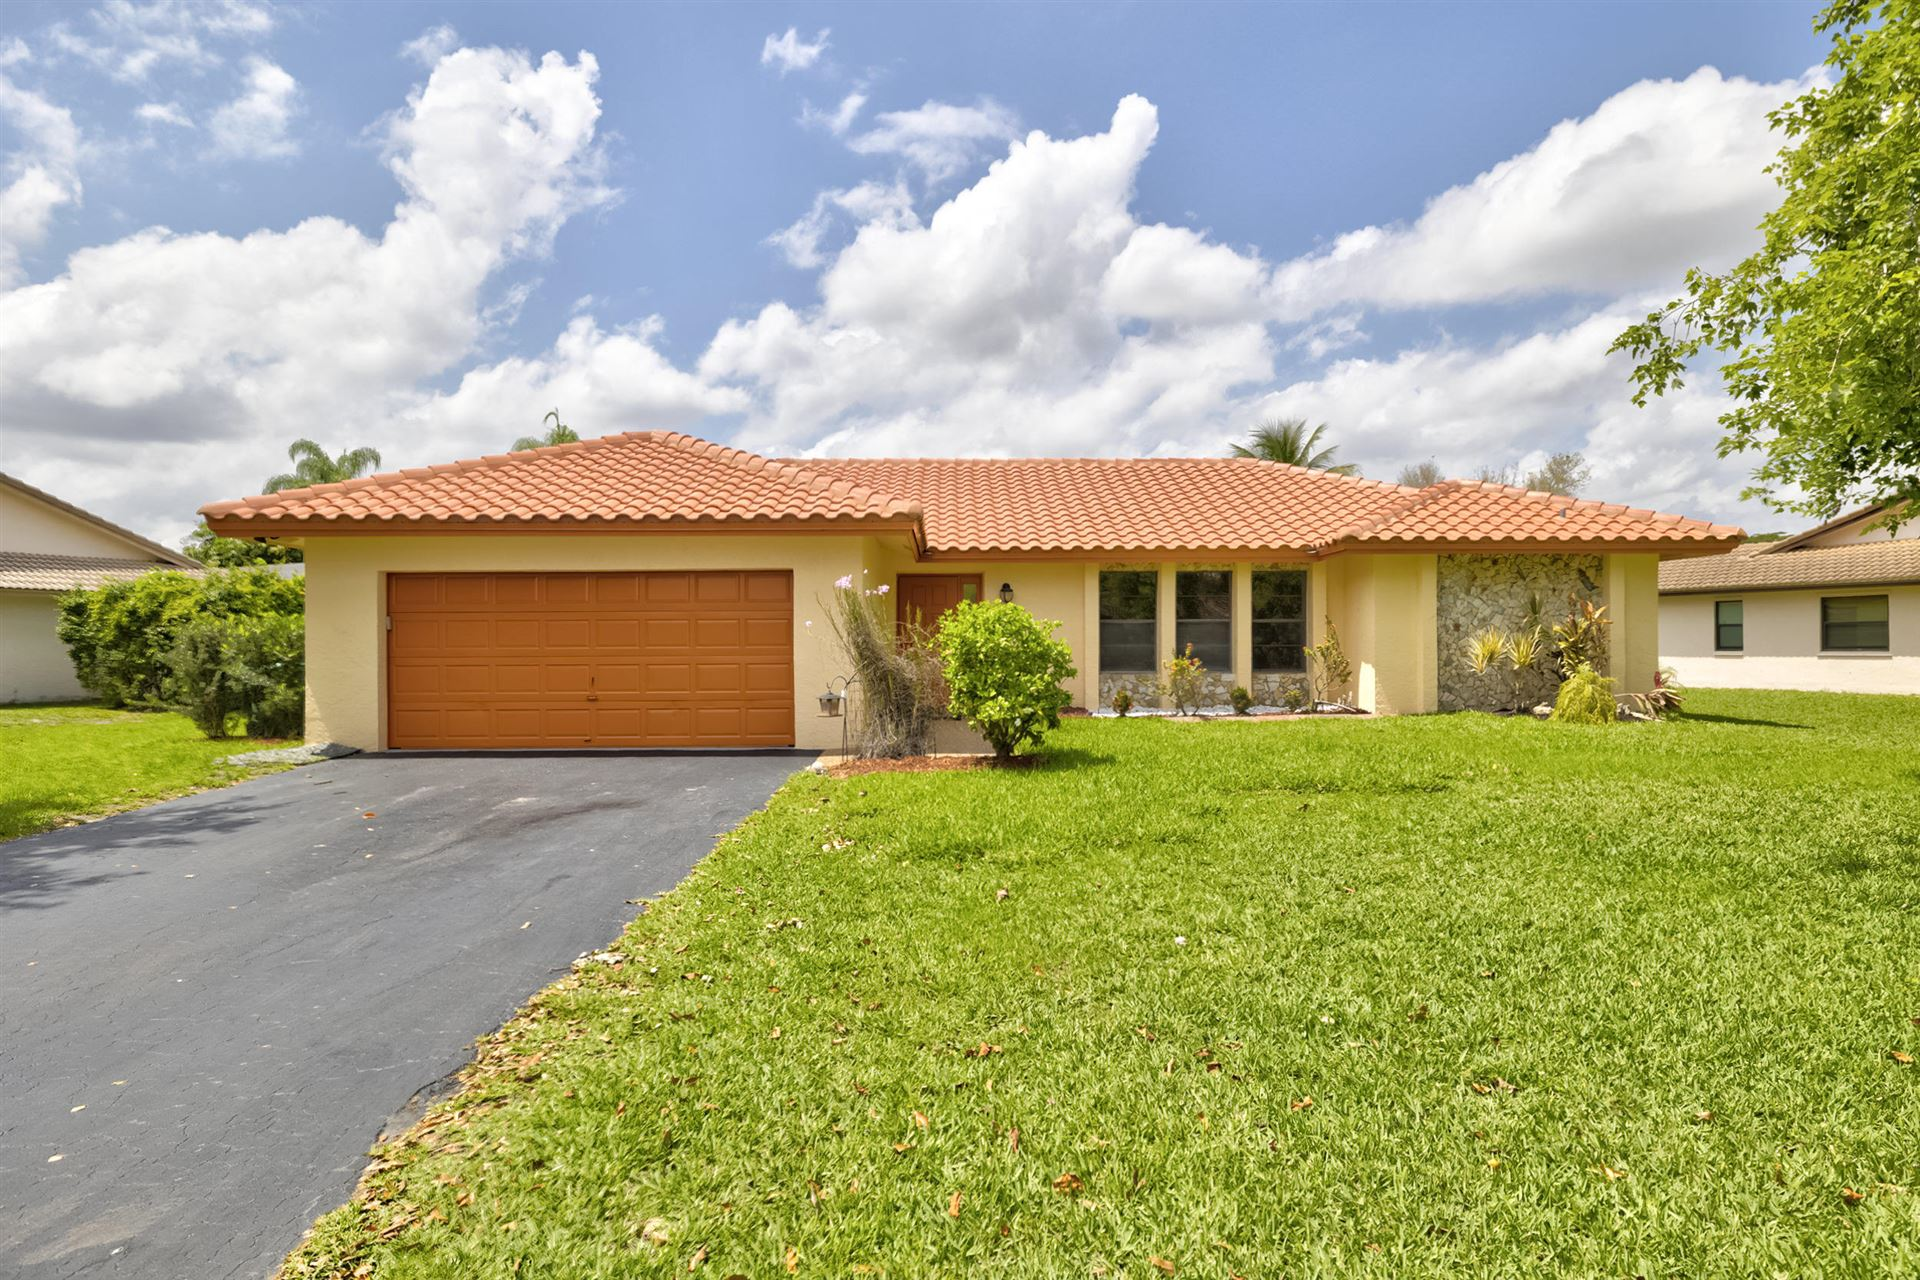 11099 NW 5th Manor, Coral Springs, FL 33071 - MLS#: RX-10711103